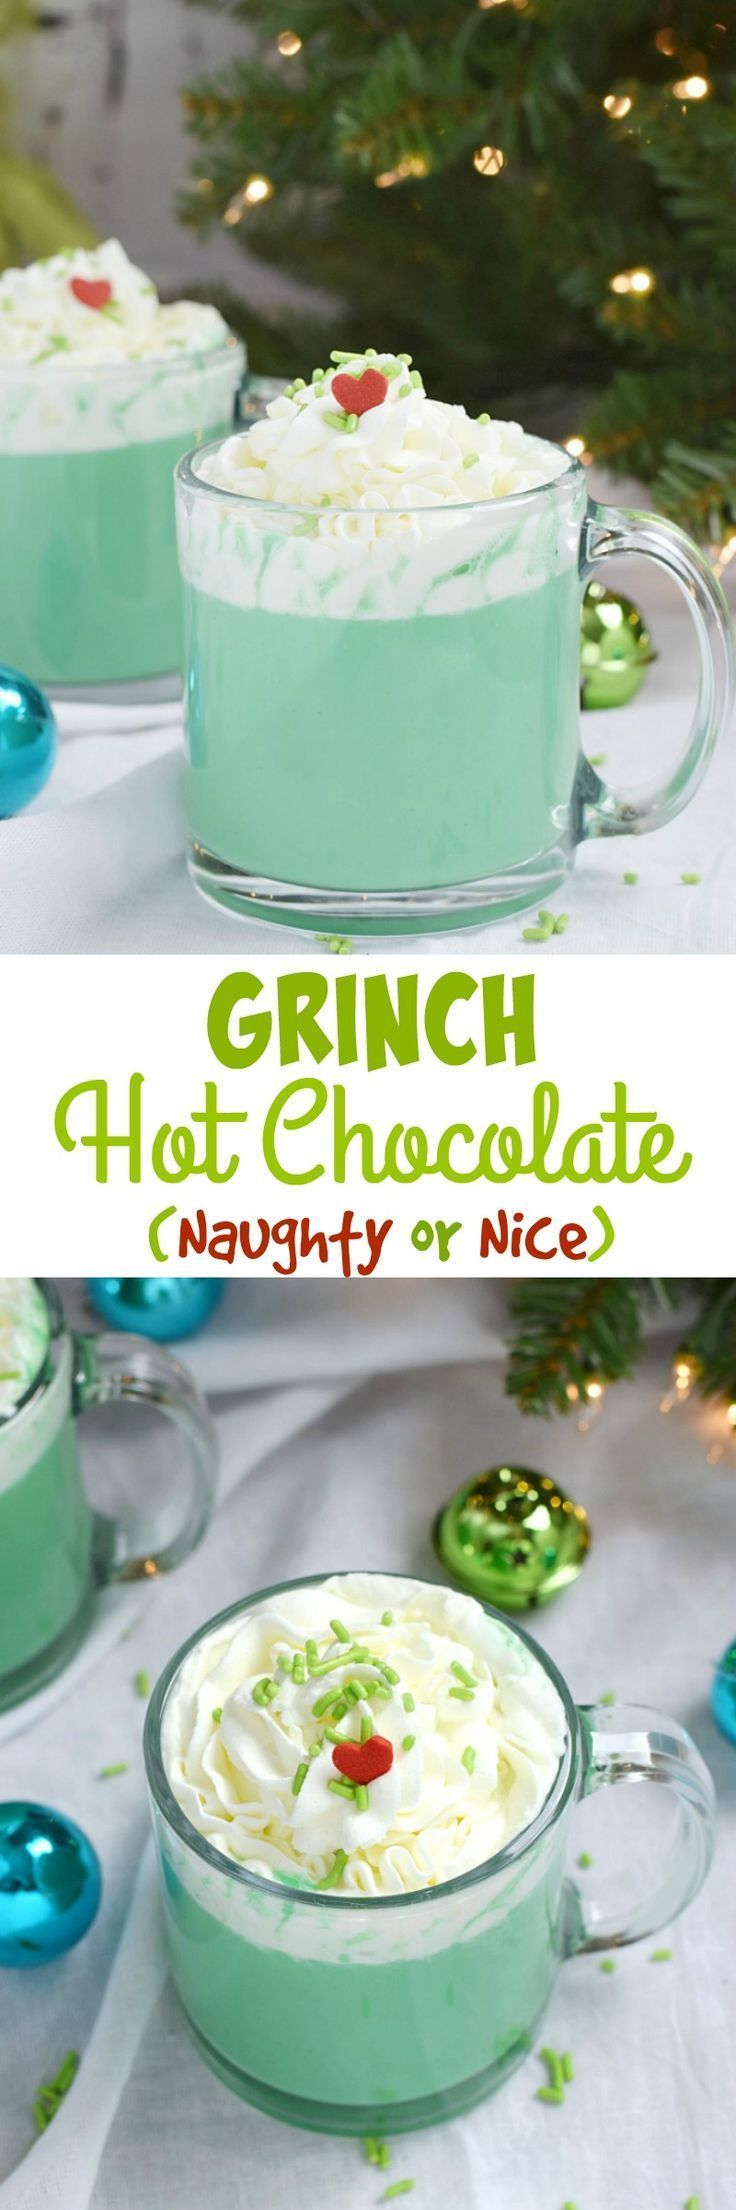 Would you like your Grinch Hot Chocolate served Naughty or Nice? You get to decide how everyone in the family gets to warm up this holiday season {wineglasswriter.com}